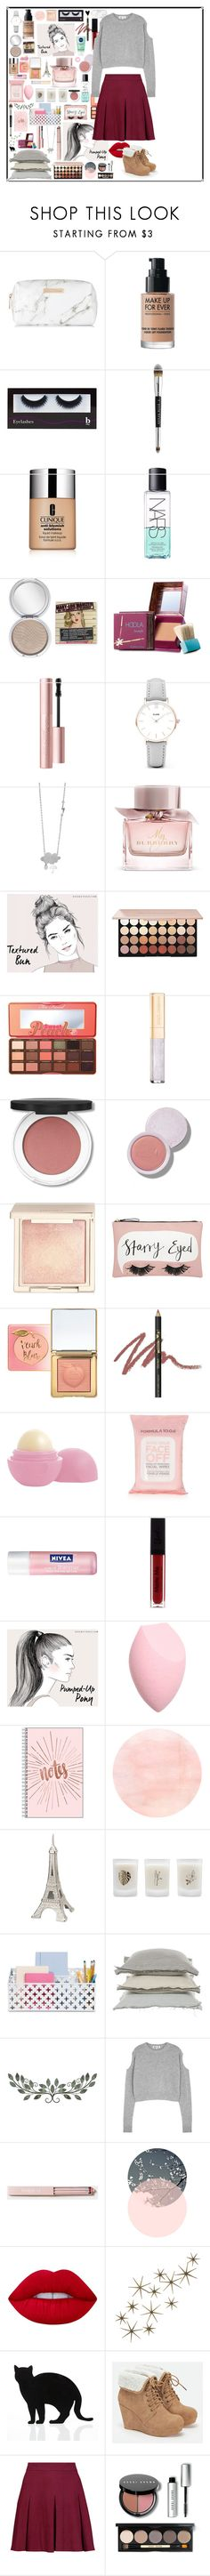 """""""Untitled #114"""" by rain-byrne ❤ liked on Polyvore featuring Spectrum, MAKE UP FOR EVER, BBrowBar, Stila, Clinique, NARS Cosmetics, TheBalm, Benefit, Too Faced Cosmetics and CLUSE"""